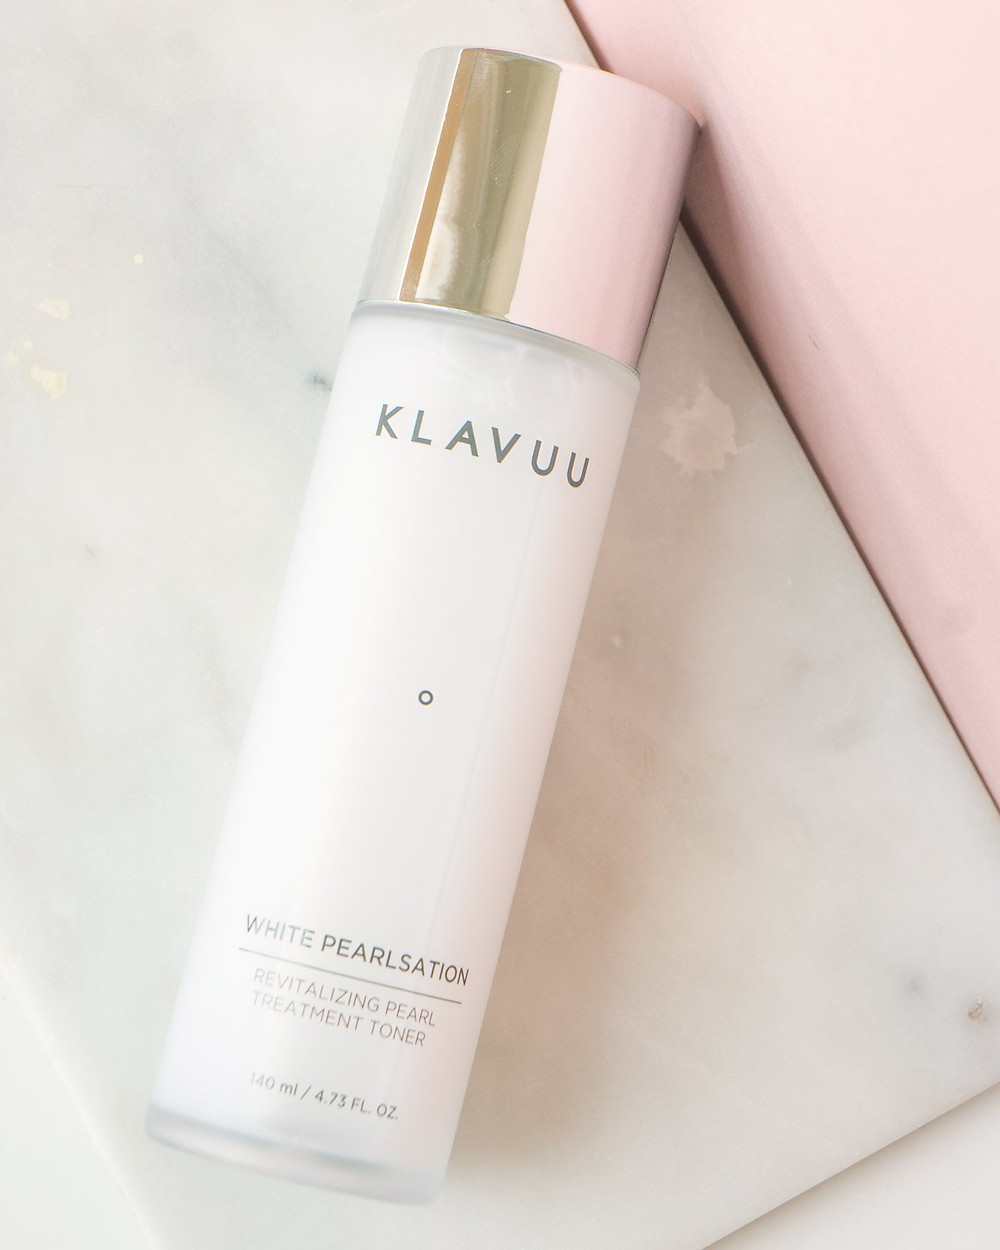 https://www.koreanbeautyshopeu.com/product-page/klaavu-white-pearlsation-revitalizing-pearl-treatment-toner-140-ml-pre-pedido